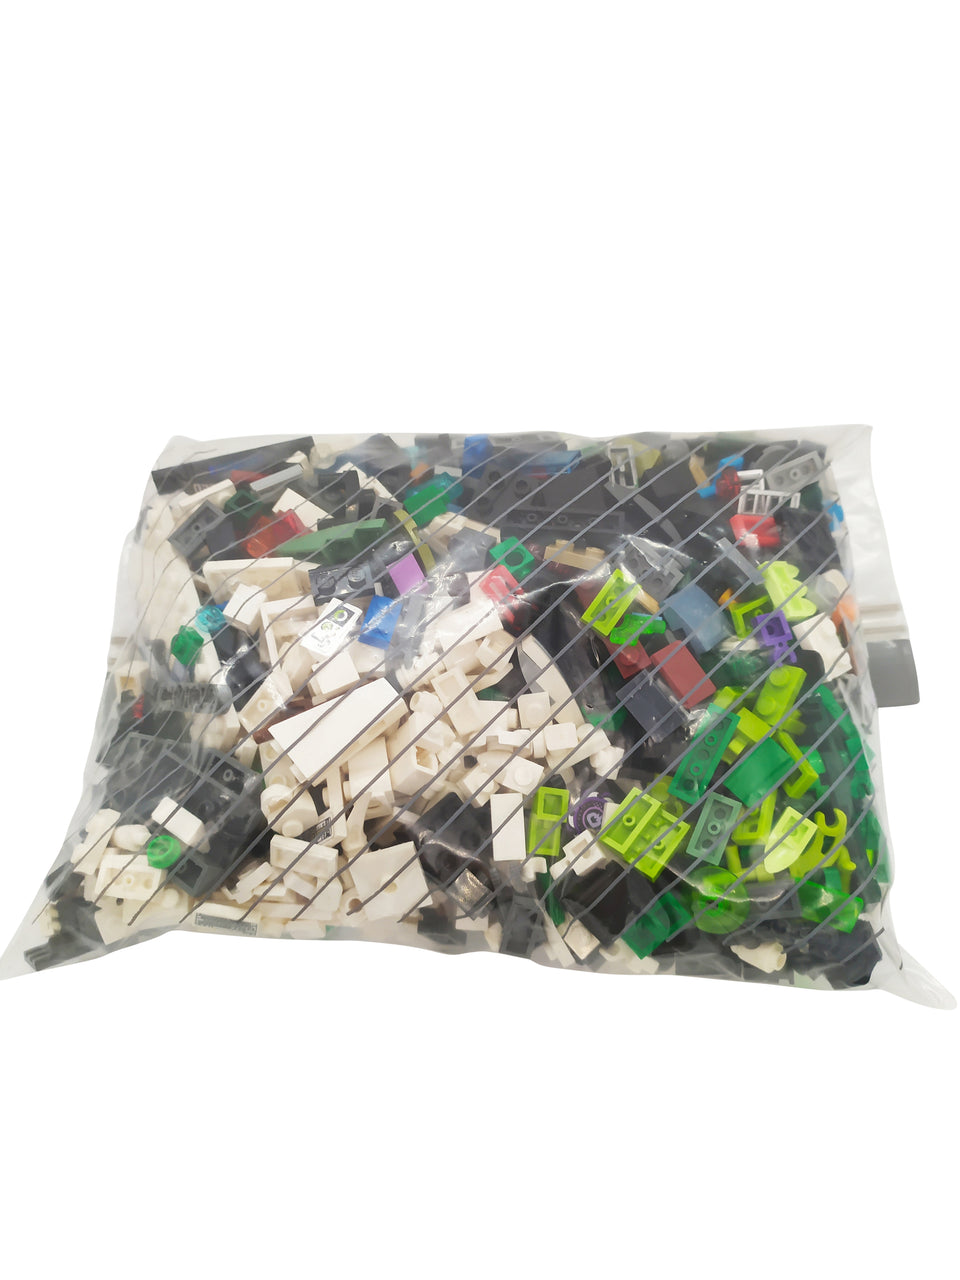 1-pound mix of Lego pieces in various colors and sizes